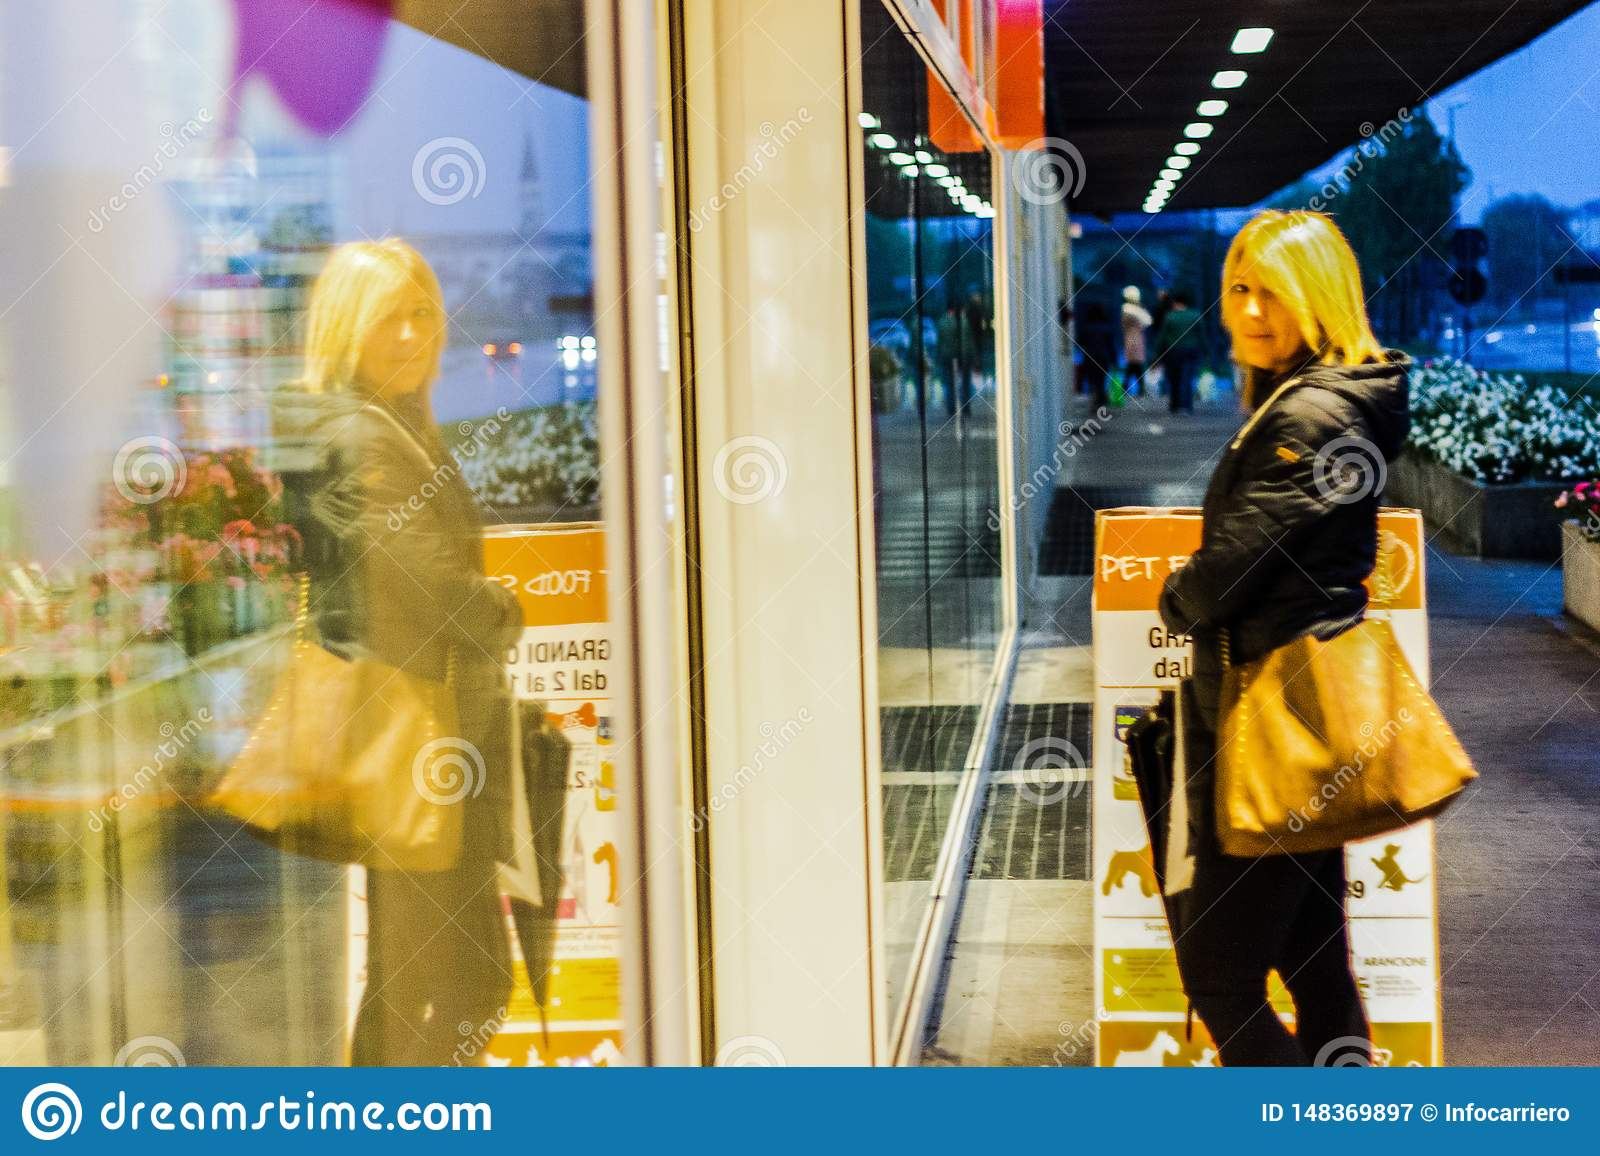 woman walking in the streets admiring shop windows intent on doing shopping